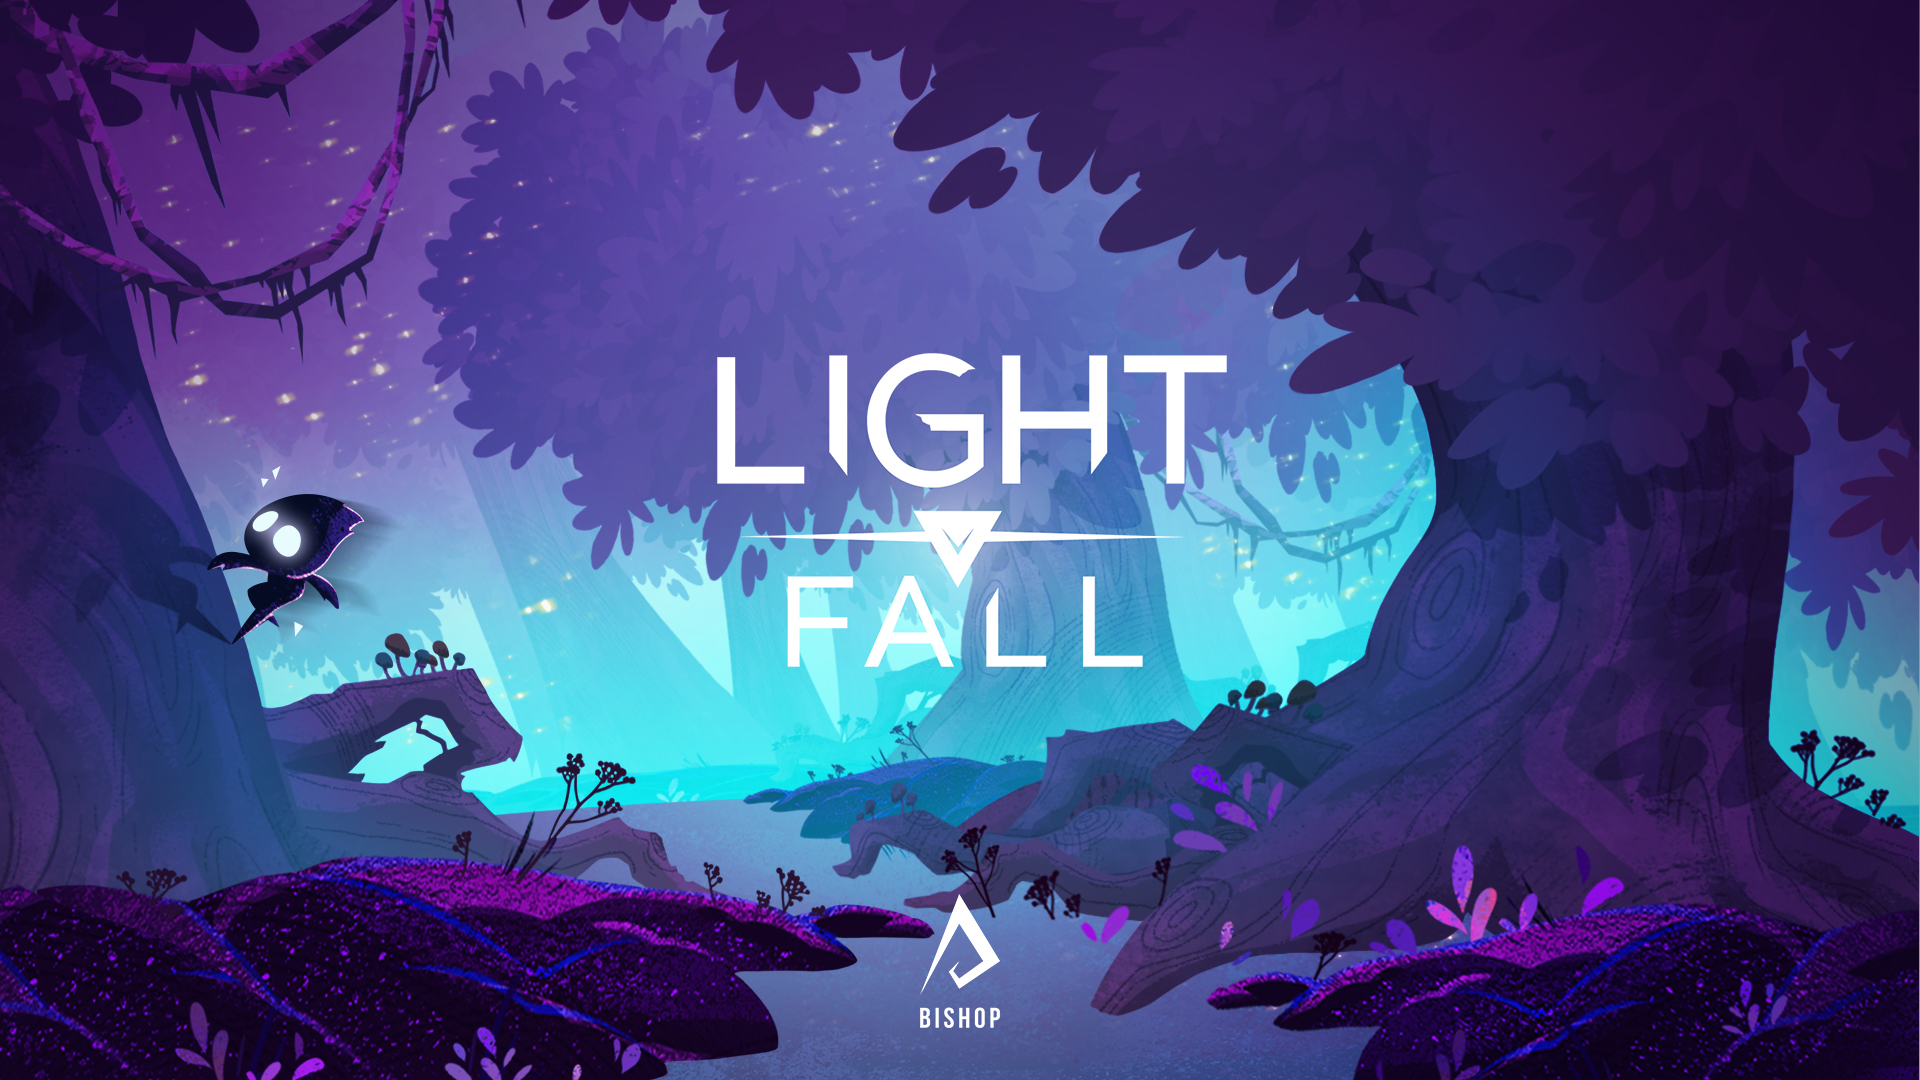 lightfall_03.jpg